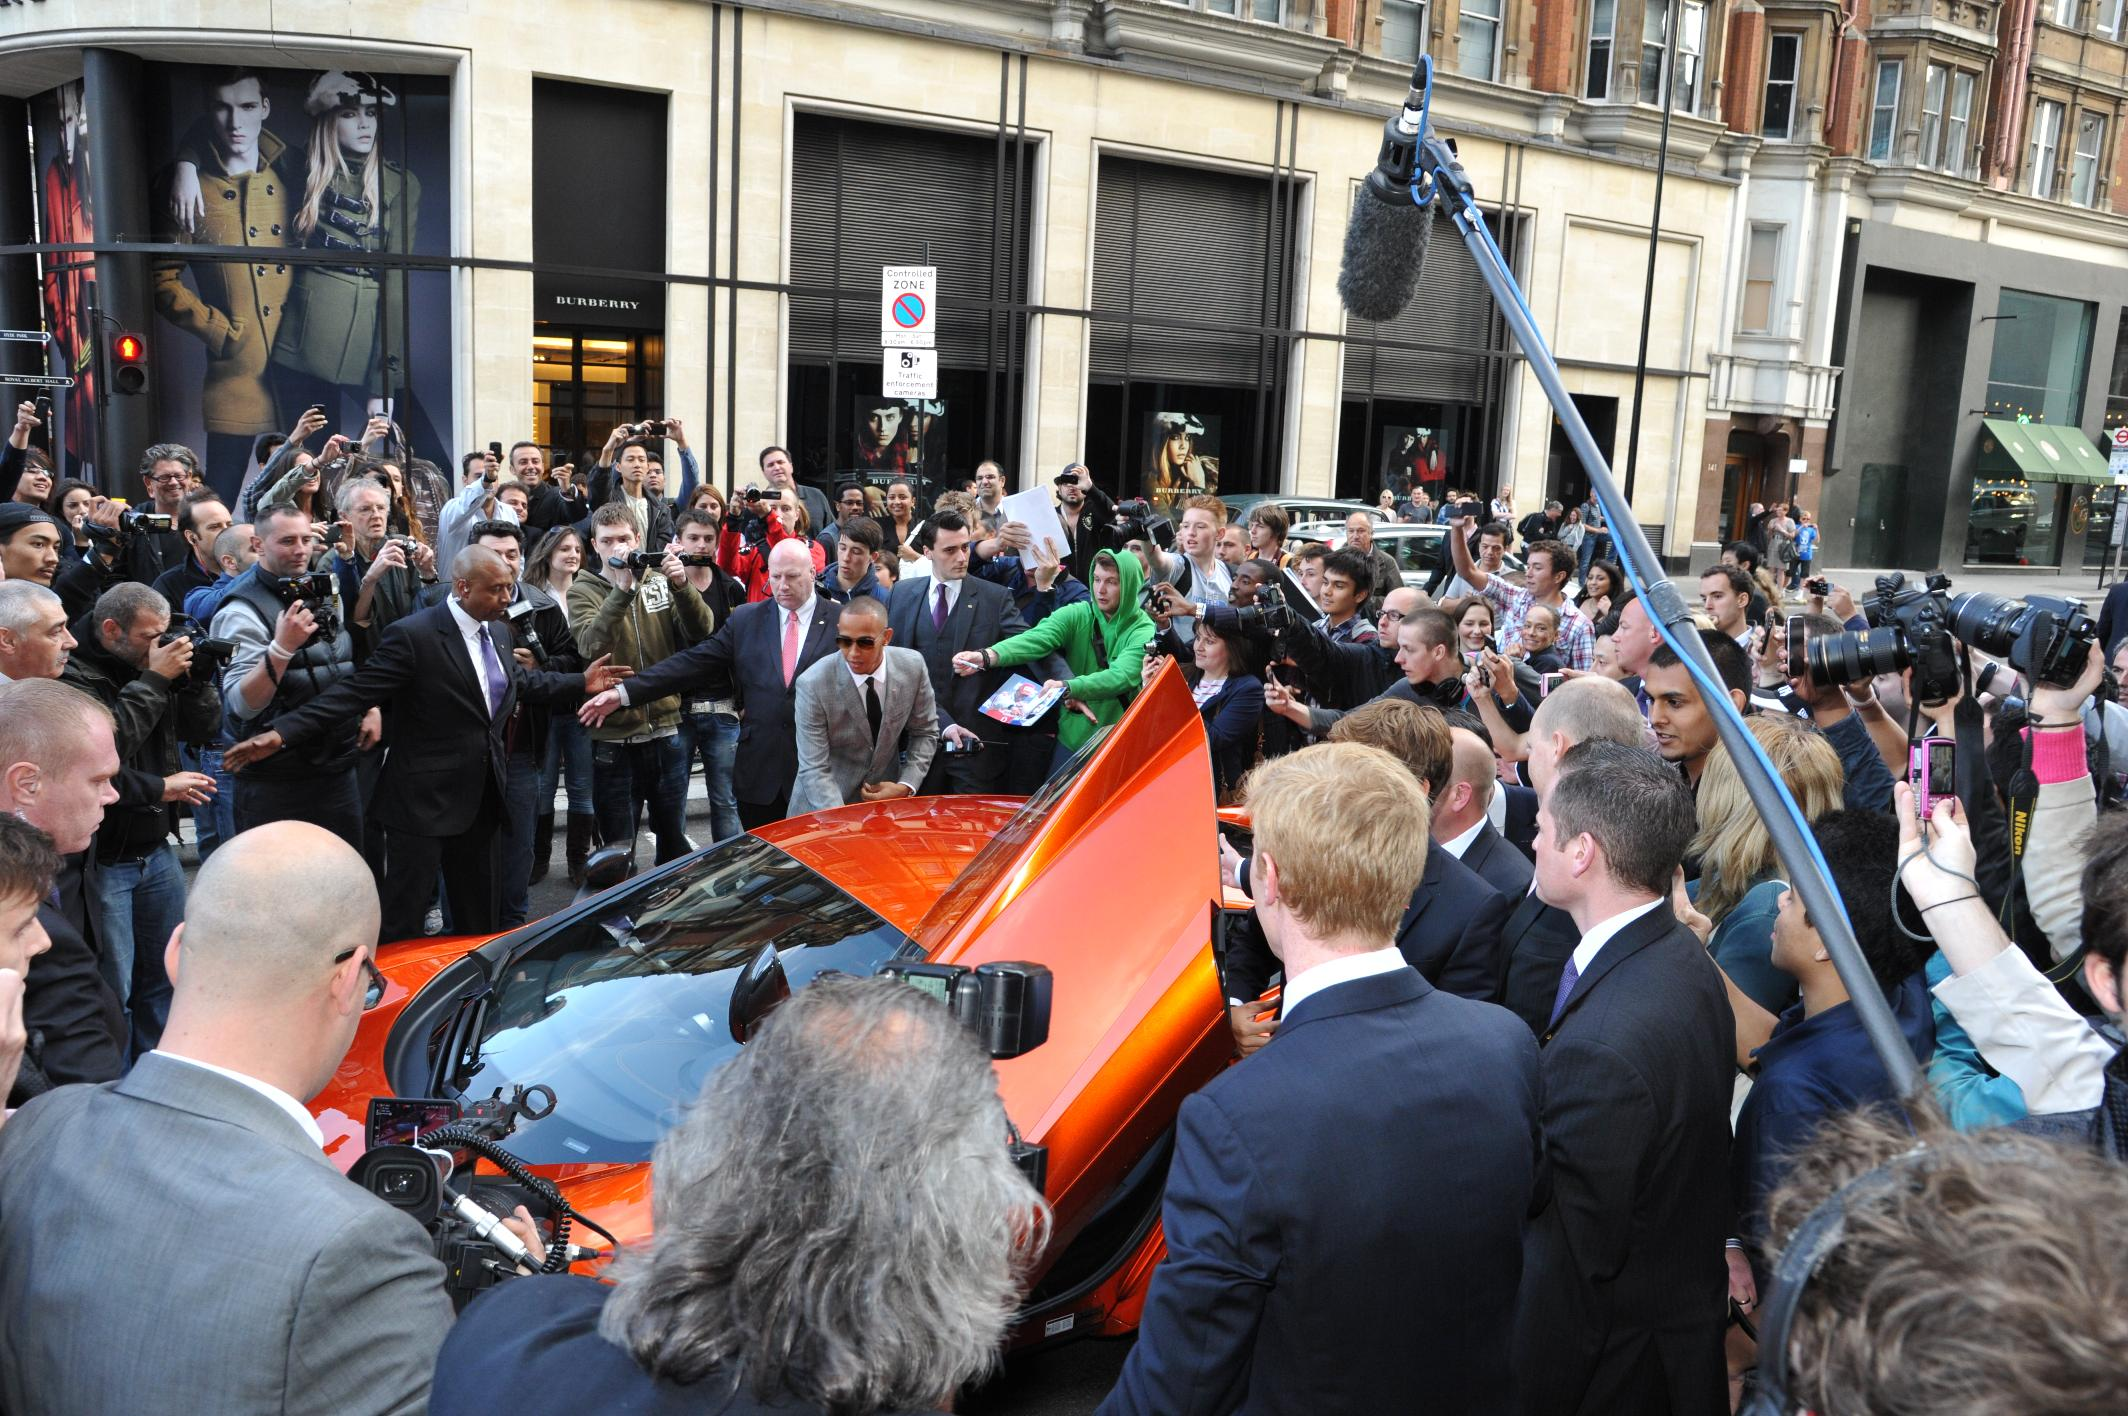 With opening of prestigious mclaren london showroom at one hyde park